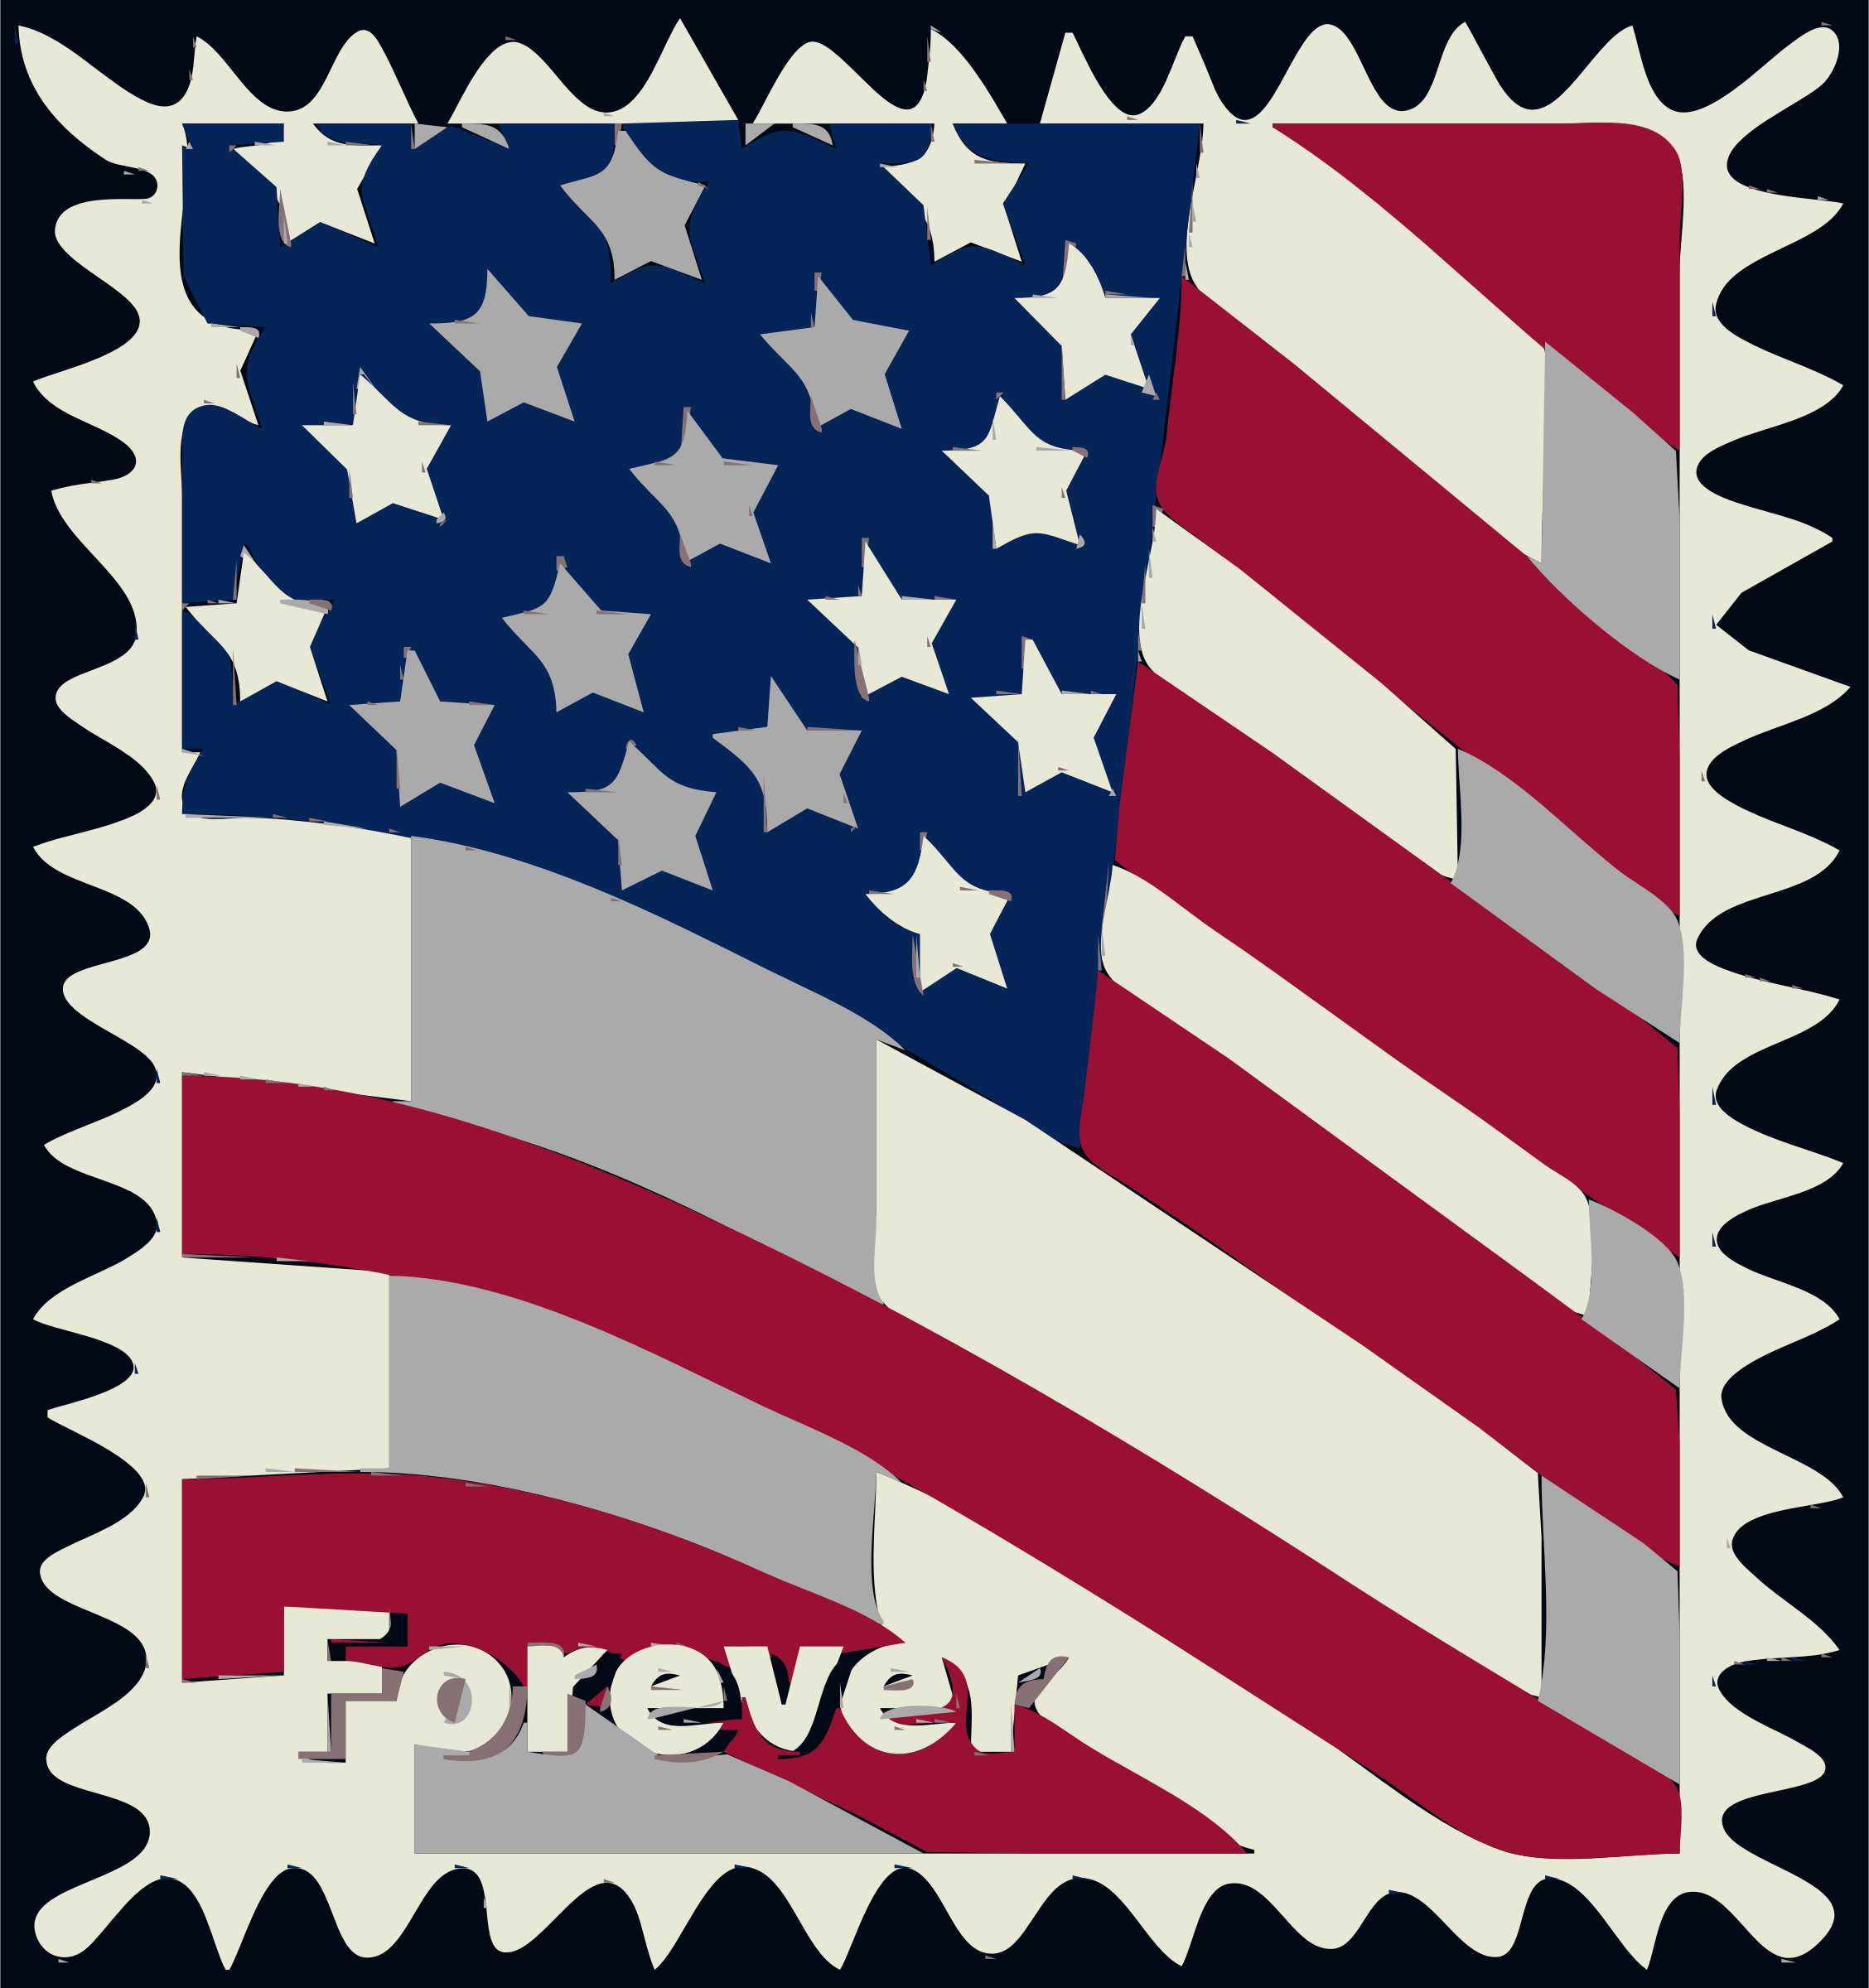 Stamp clipart #6, Download drawings